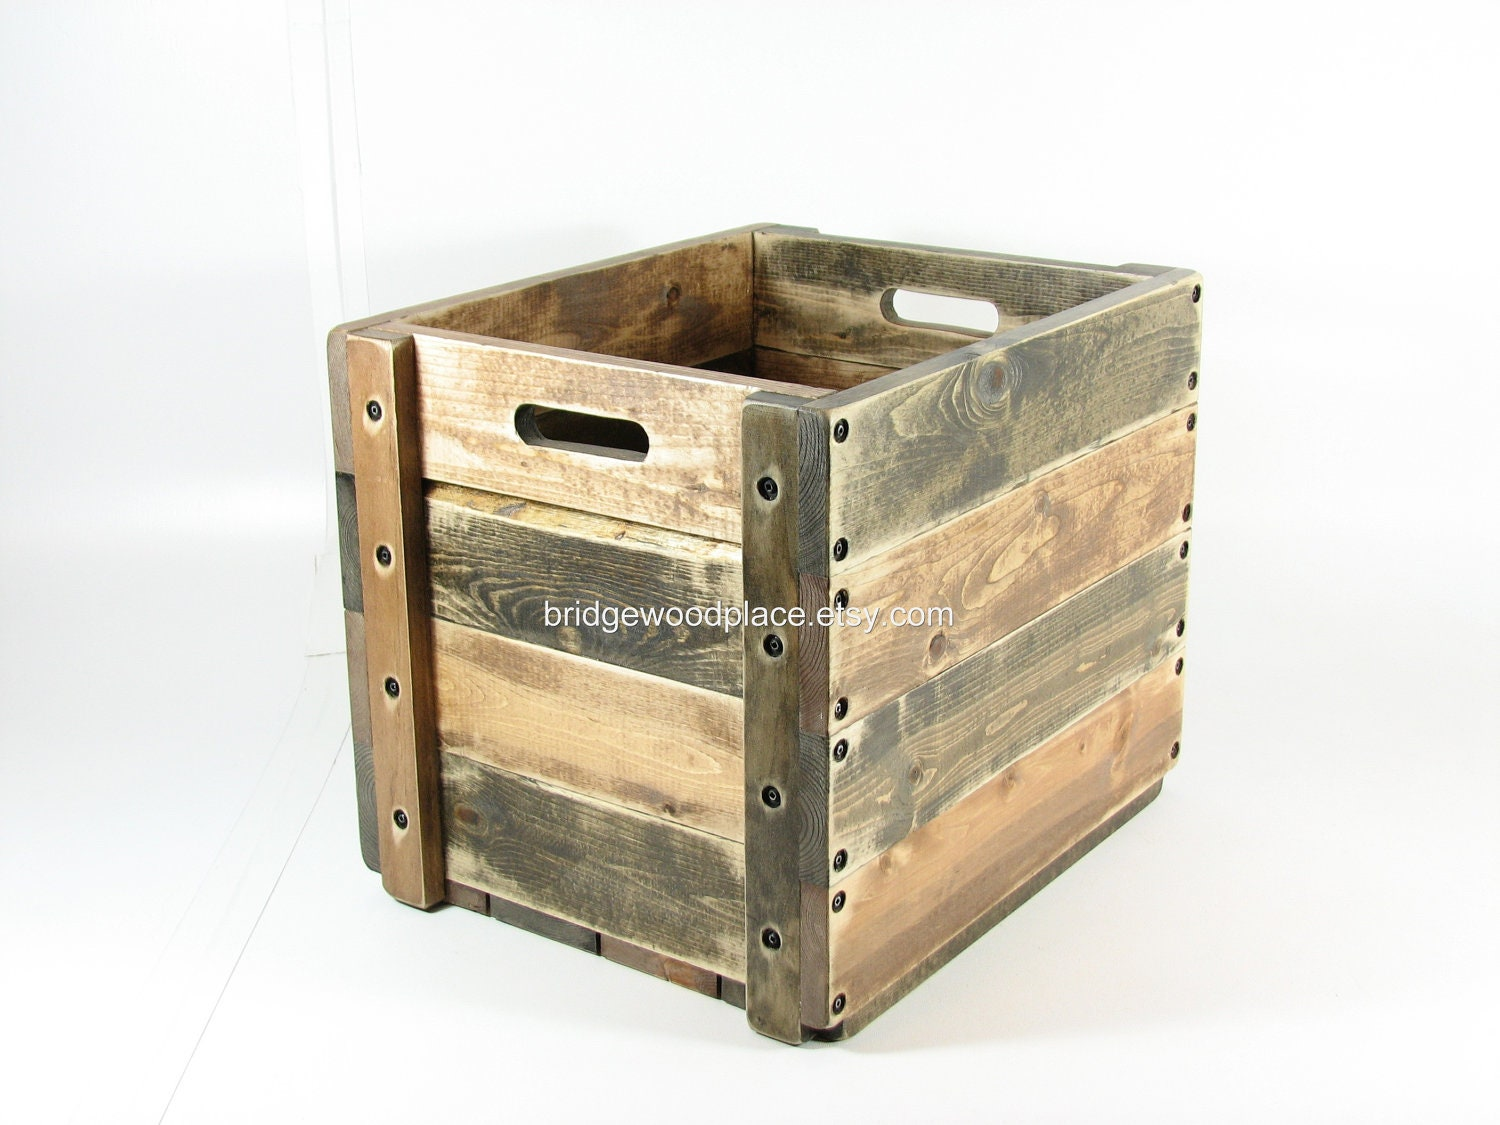 wood crate wooden box table furniture storage with two toned